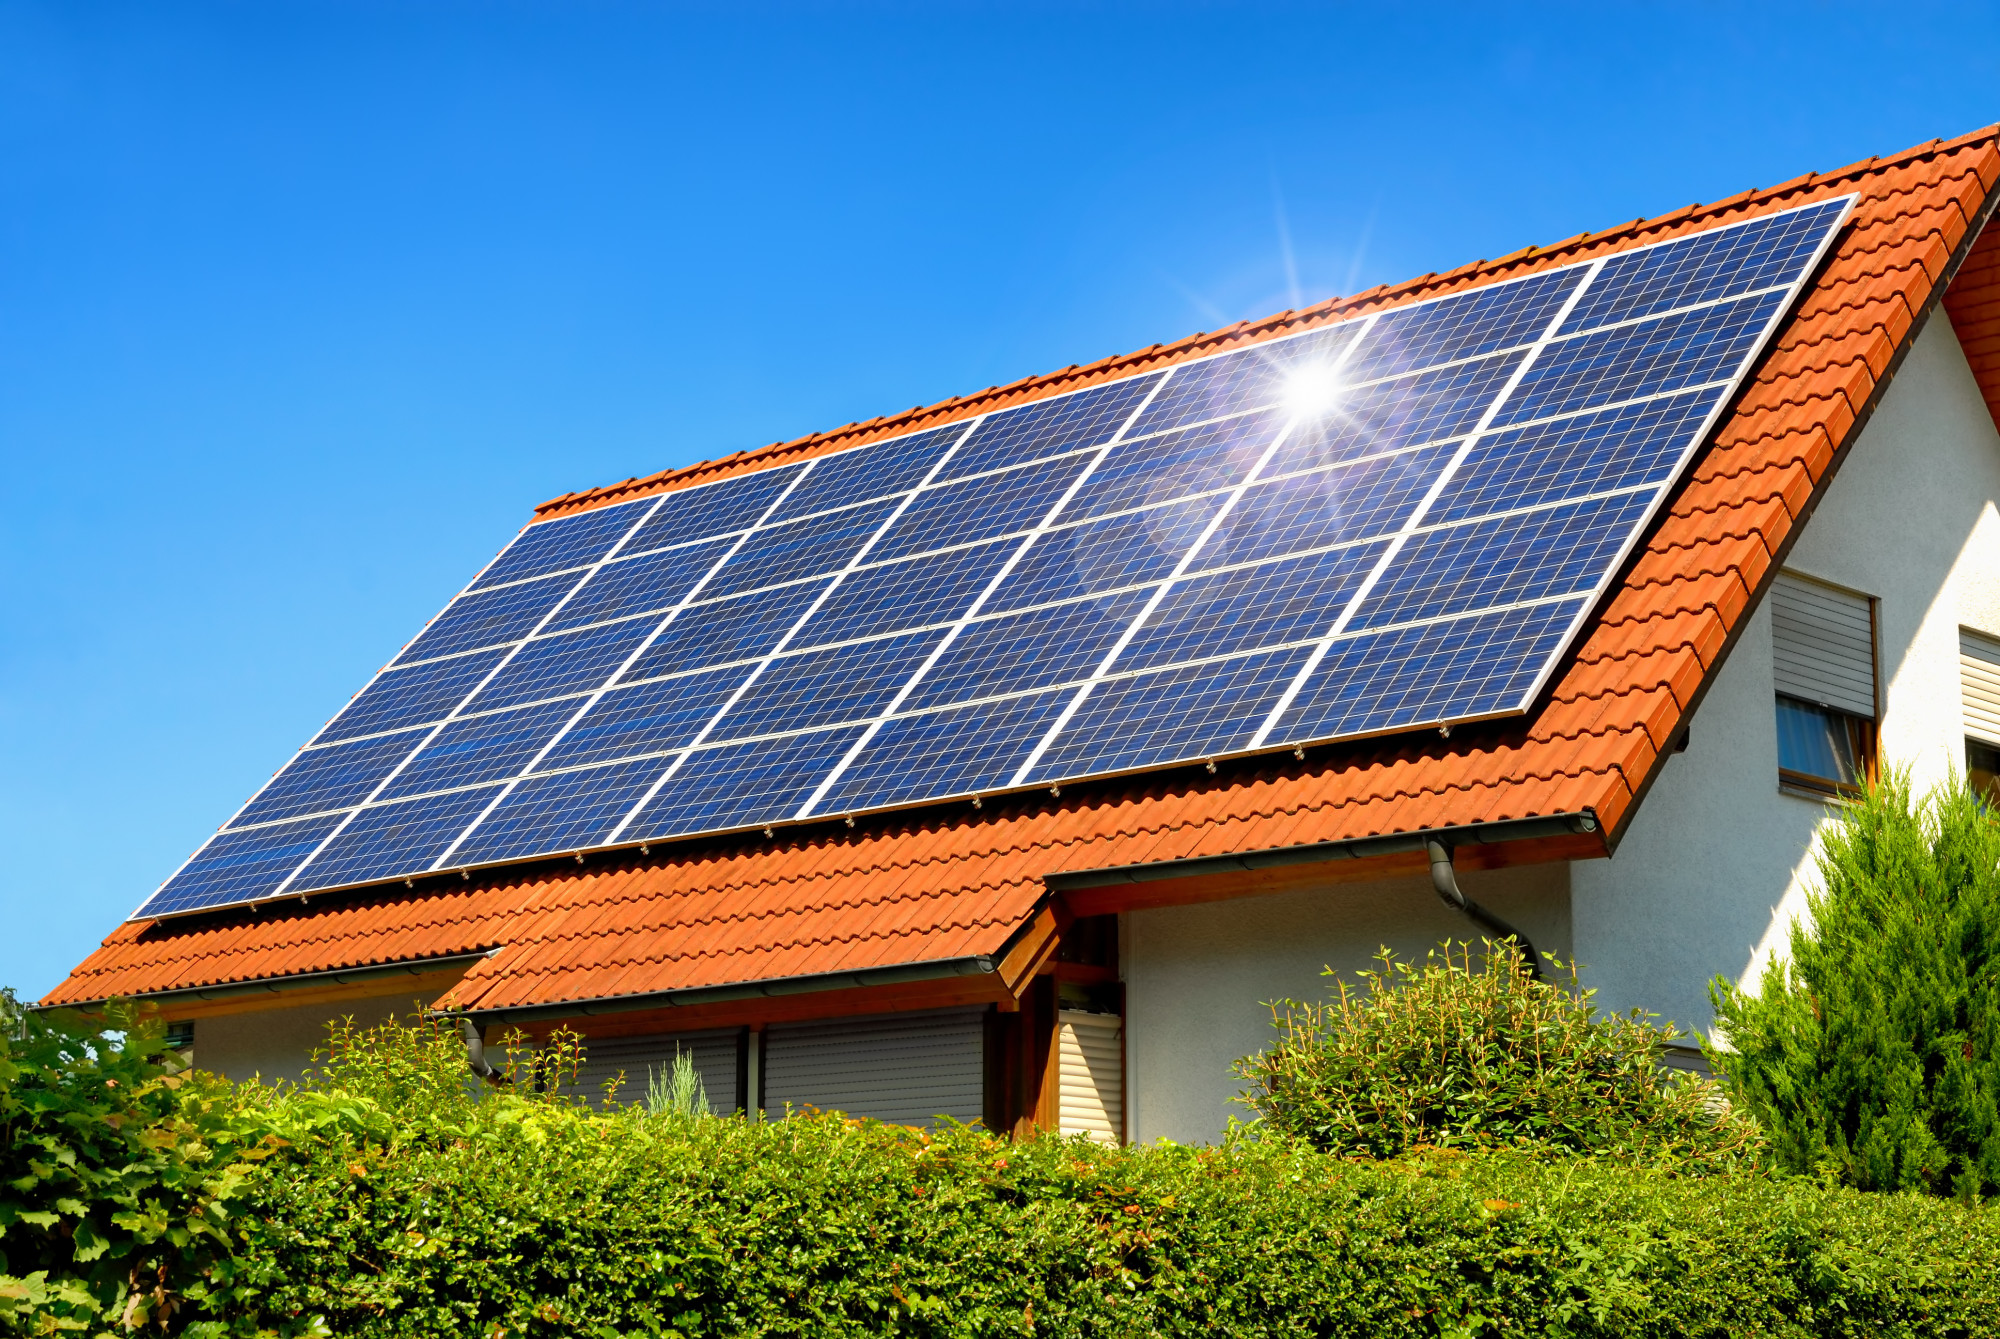 5 Key Questions to Ask Before Going Solar